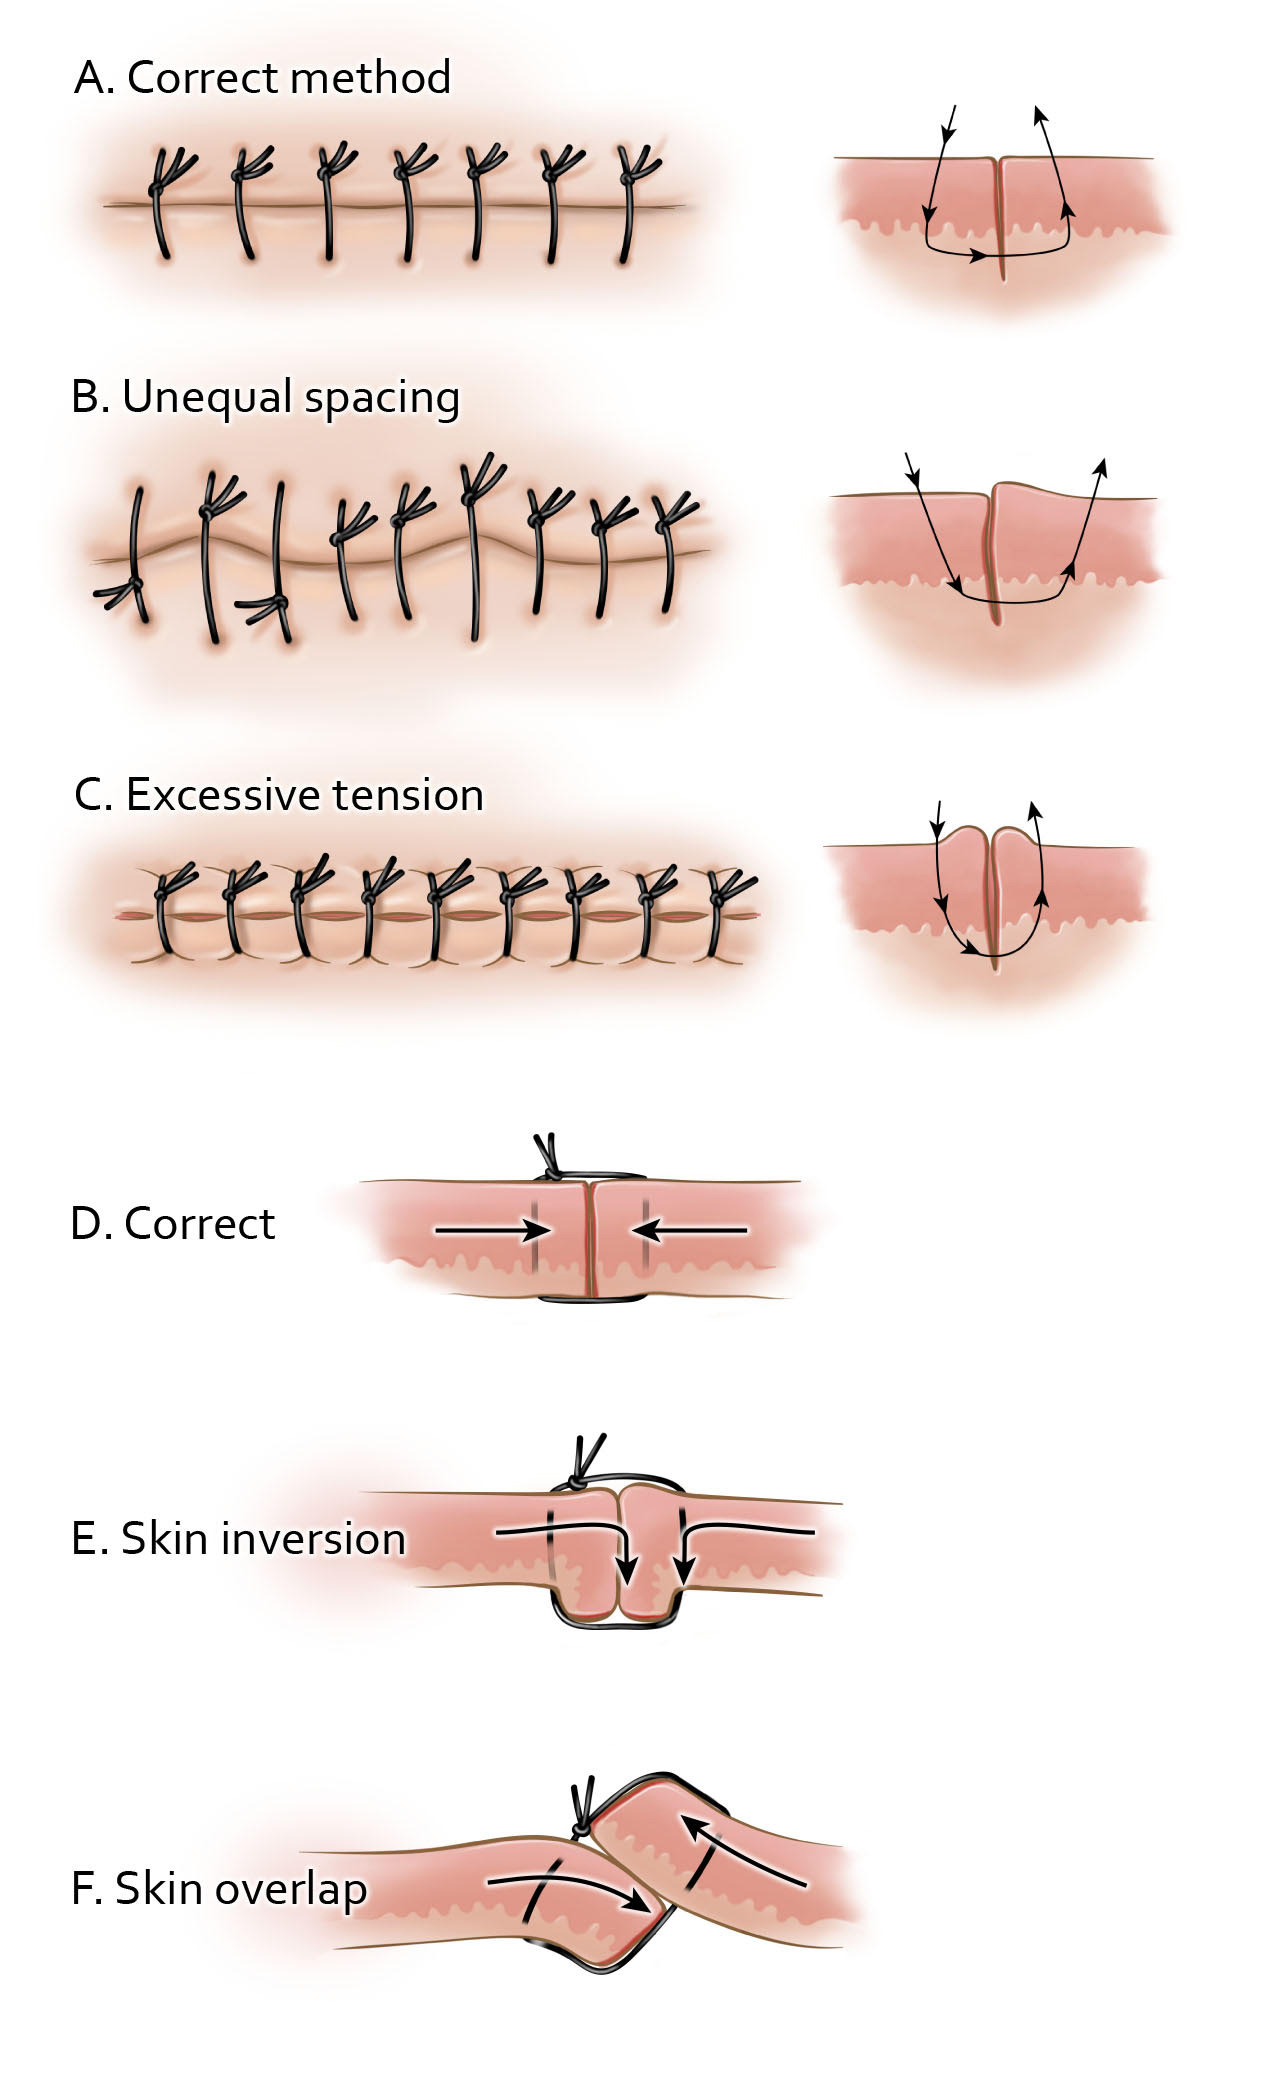 Figure 8: Achieving ideal tissue approximation requires consistent and meticulous technique. Correct simple suturing (A) will apply ideal tension across each stitch to avoid uneven approximation (B) or tissue strangulation (C). The appearance of correct tissue approximation, as well as common pitfalls are demonstrated. Skin inversion (E) and overlap (F) are some of the most common and easily avoidable errors that can seriously affect wound healing and lead to infection and other complications.